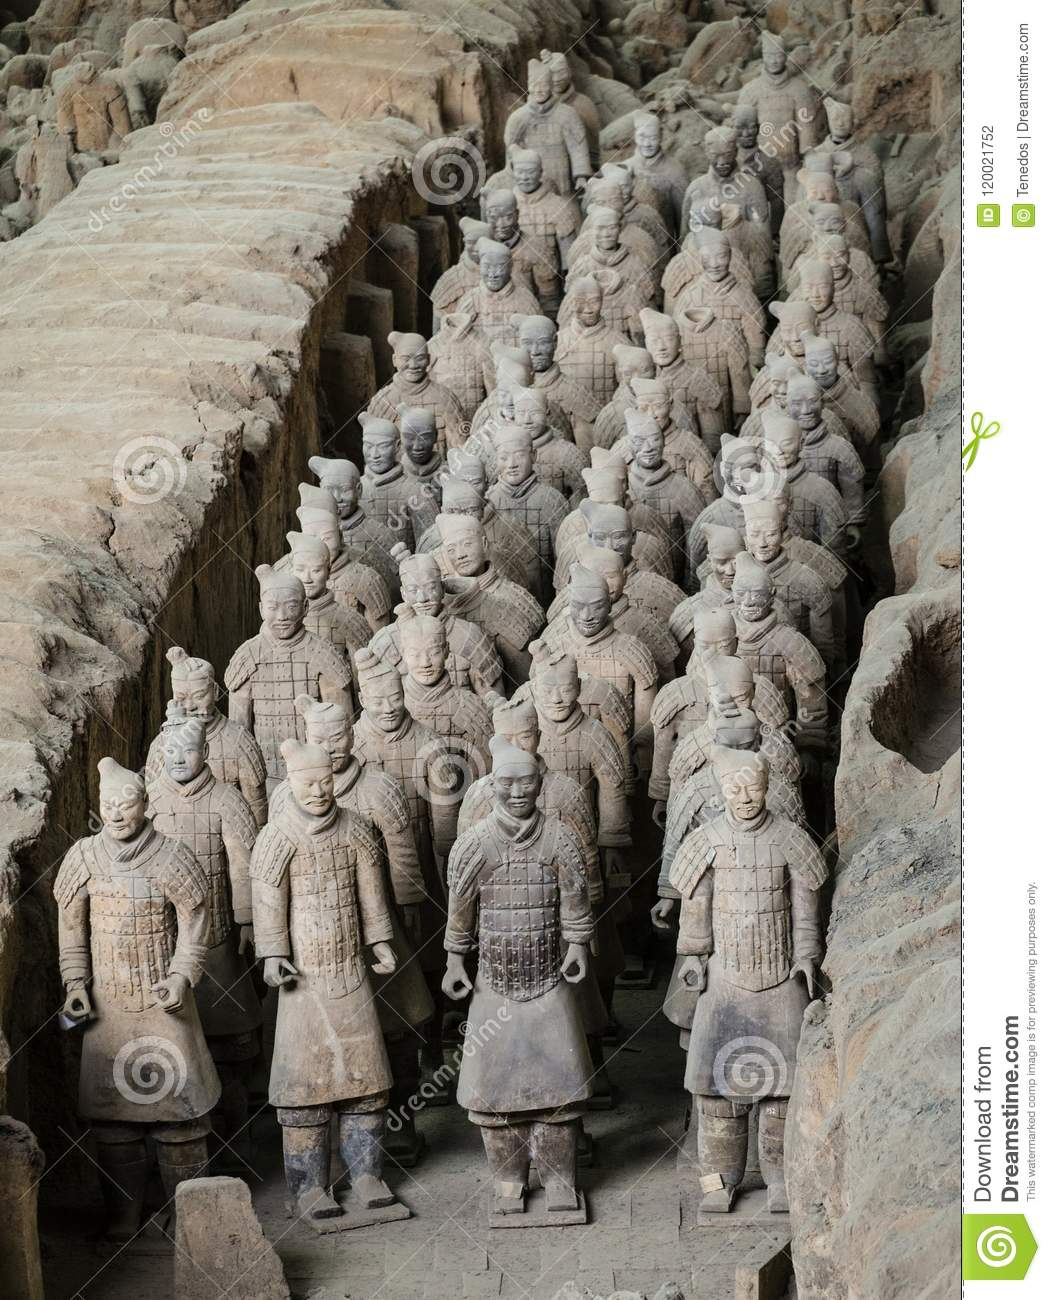 Terracota Army of the first emperor of China